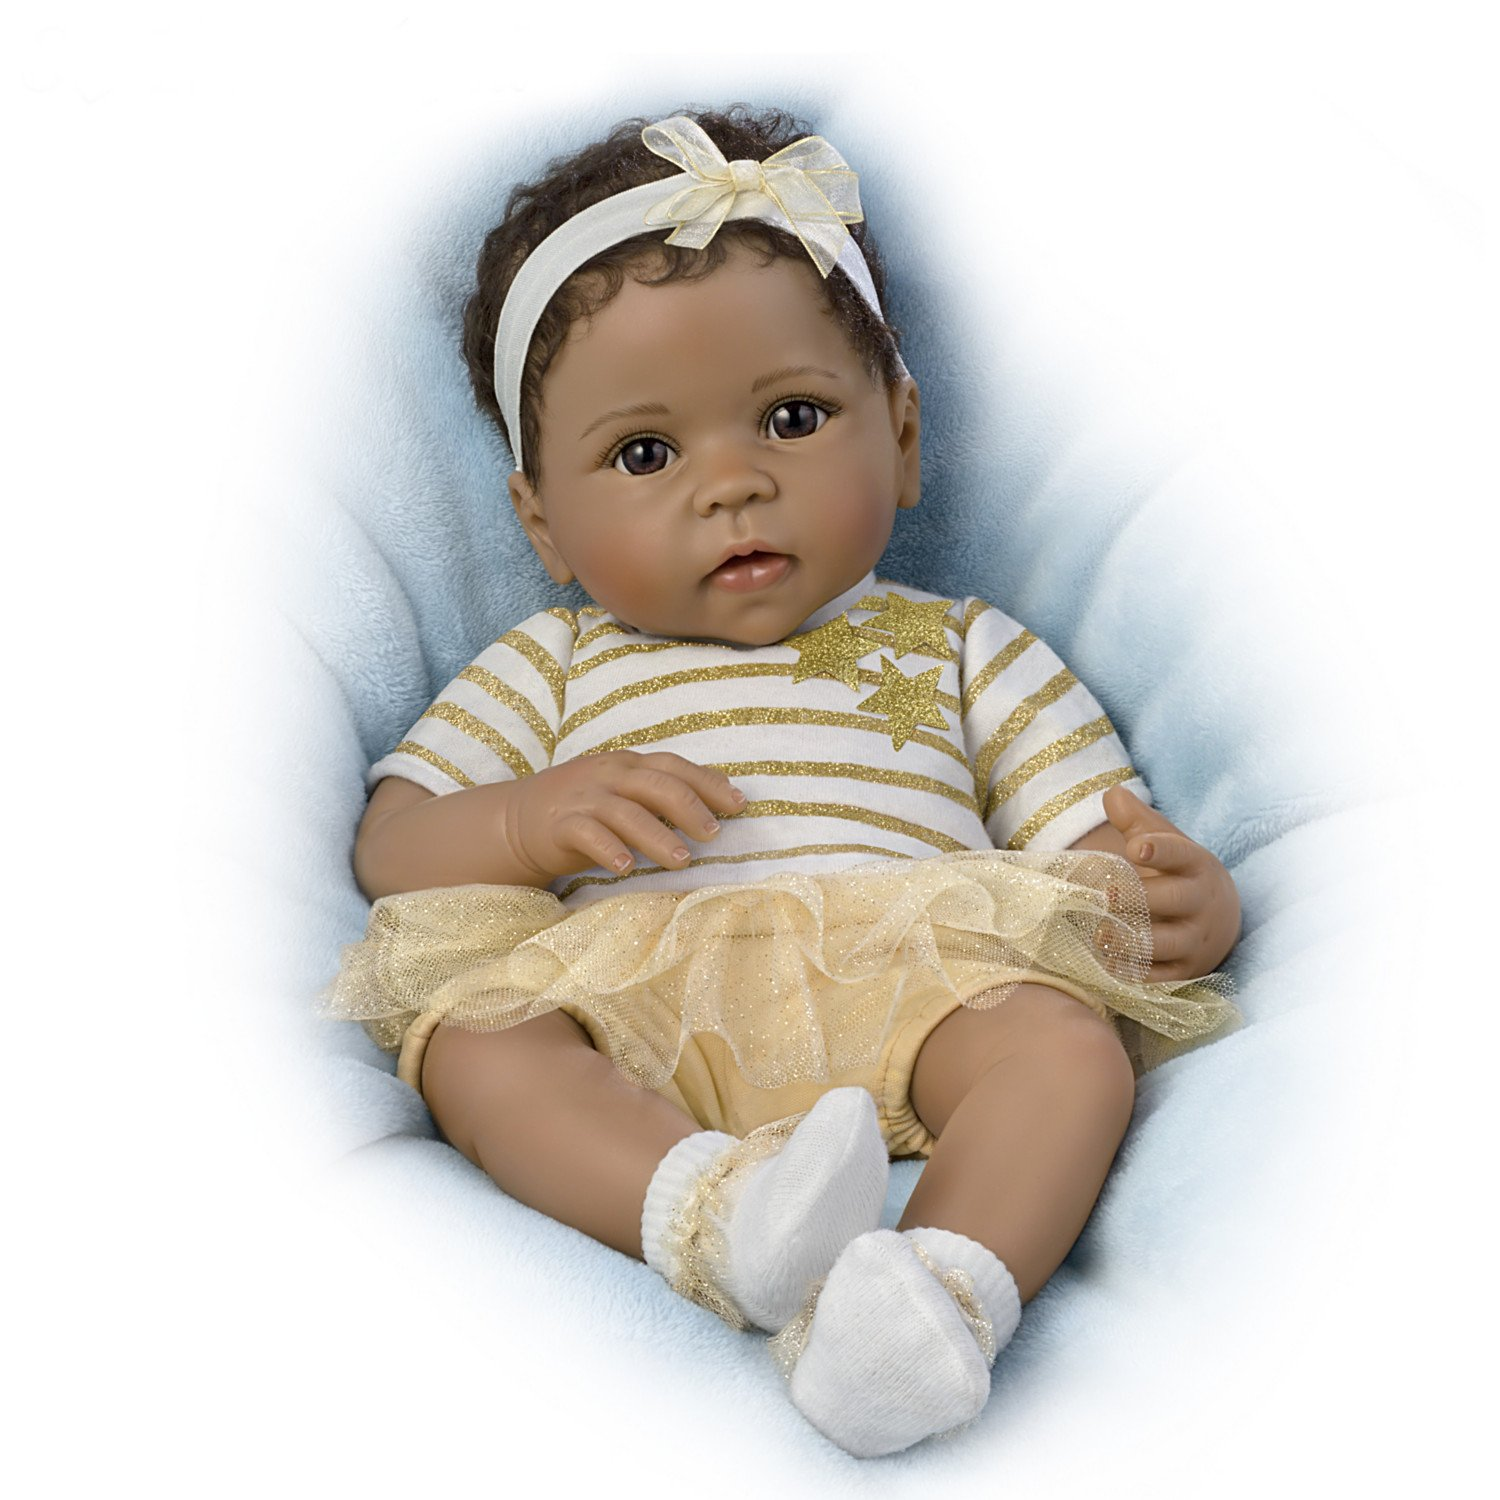 The Ashton-Drake Galleries Weighted Lifelike Baby Girl Doll by Artist Linda Murray: Star Themed Outfit by The Ashton-Drake Galleries